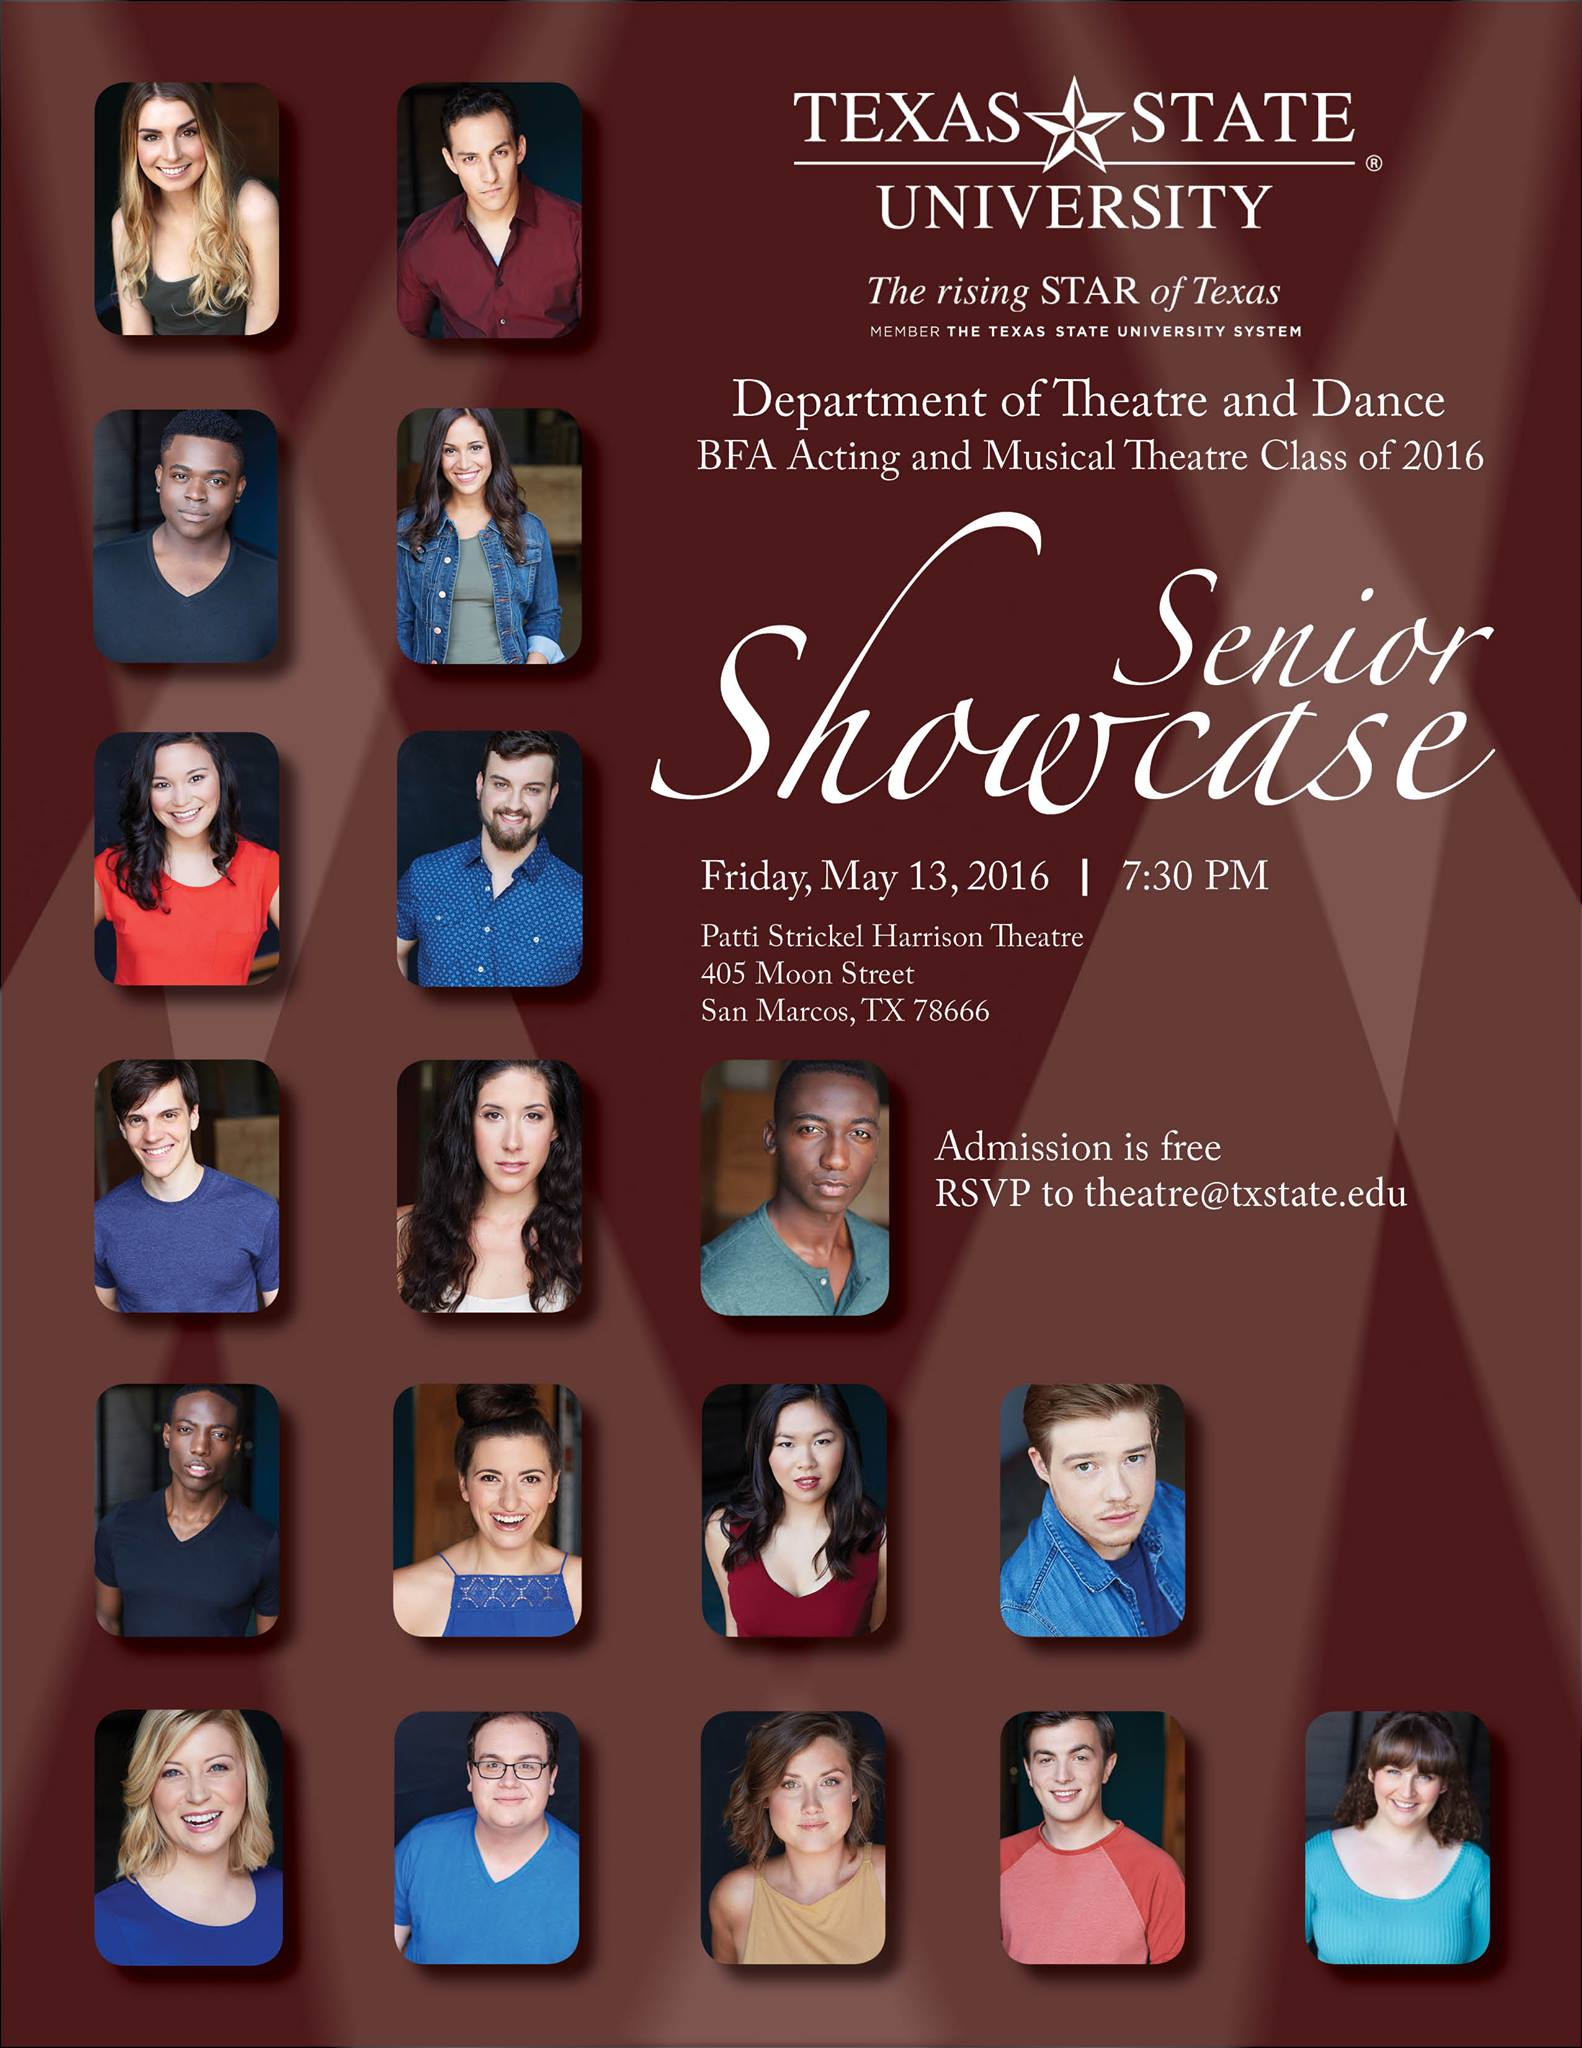 Senior Showcase by Texas State University